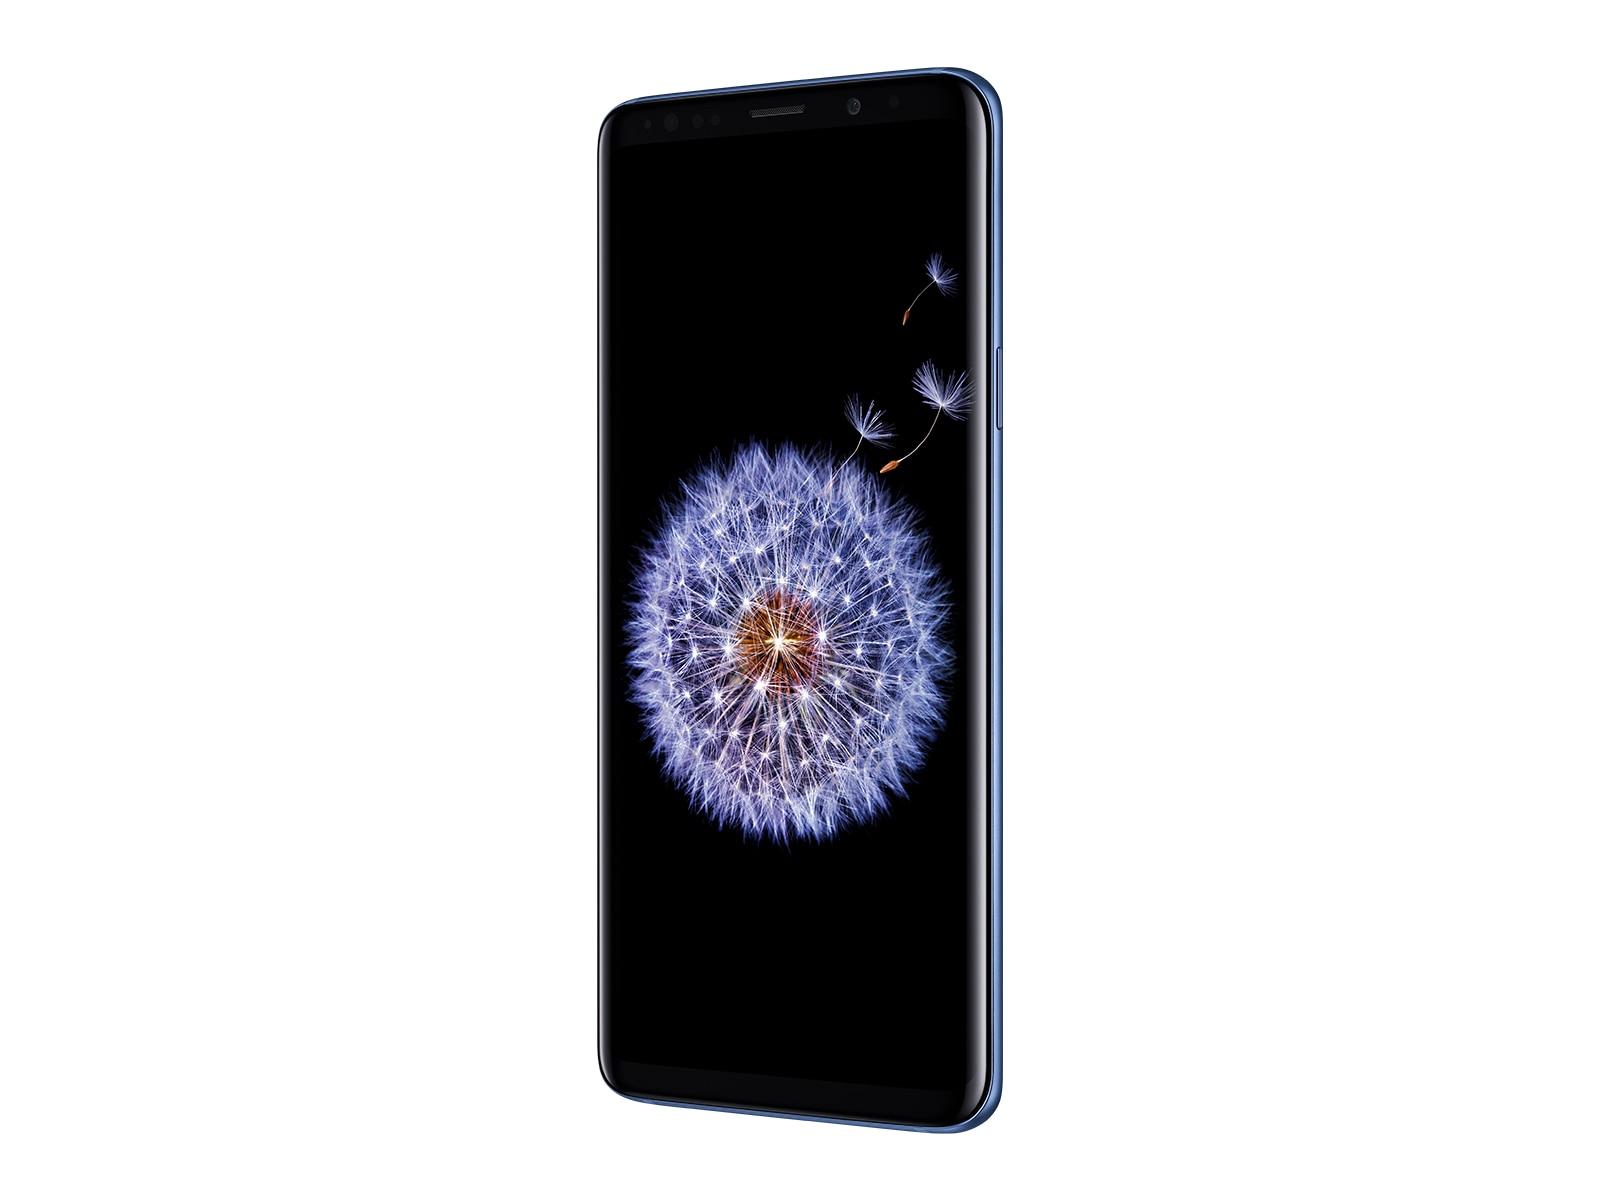 Thumbnail image of Galaxy S9+ 64GB (US Cellular)